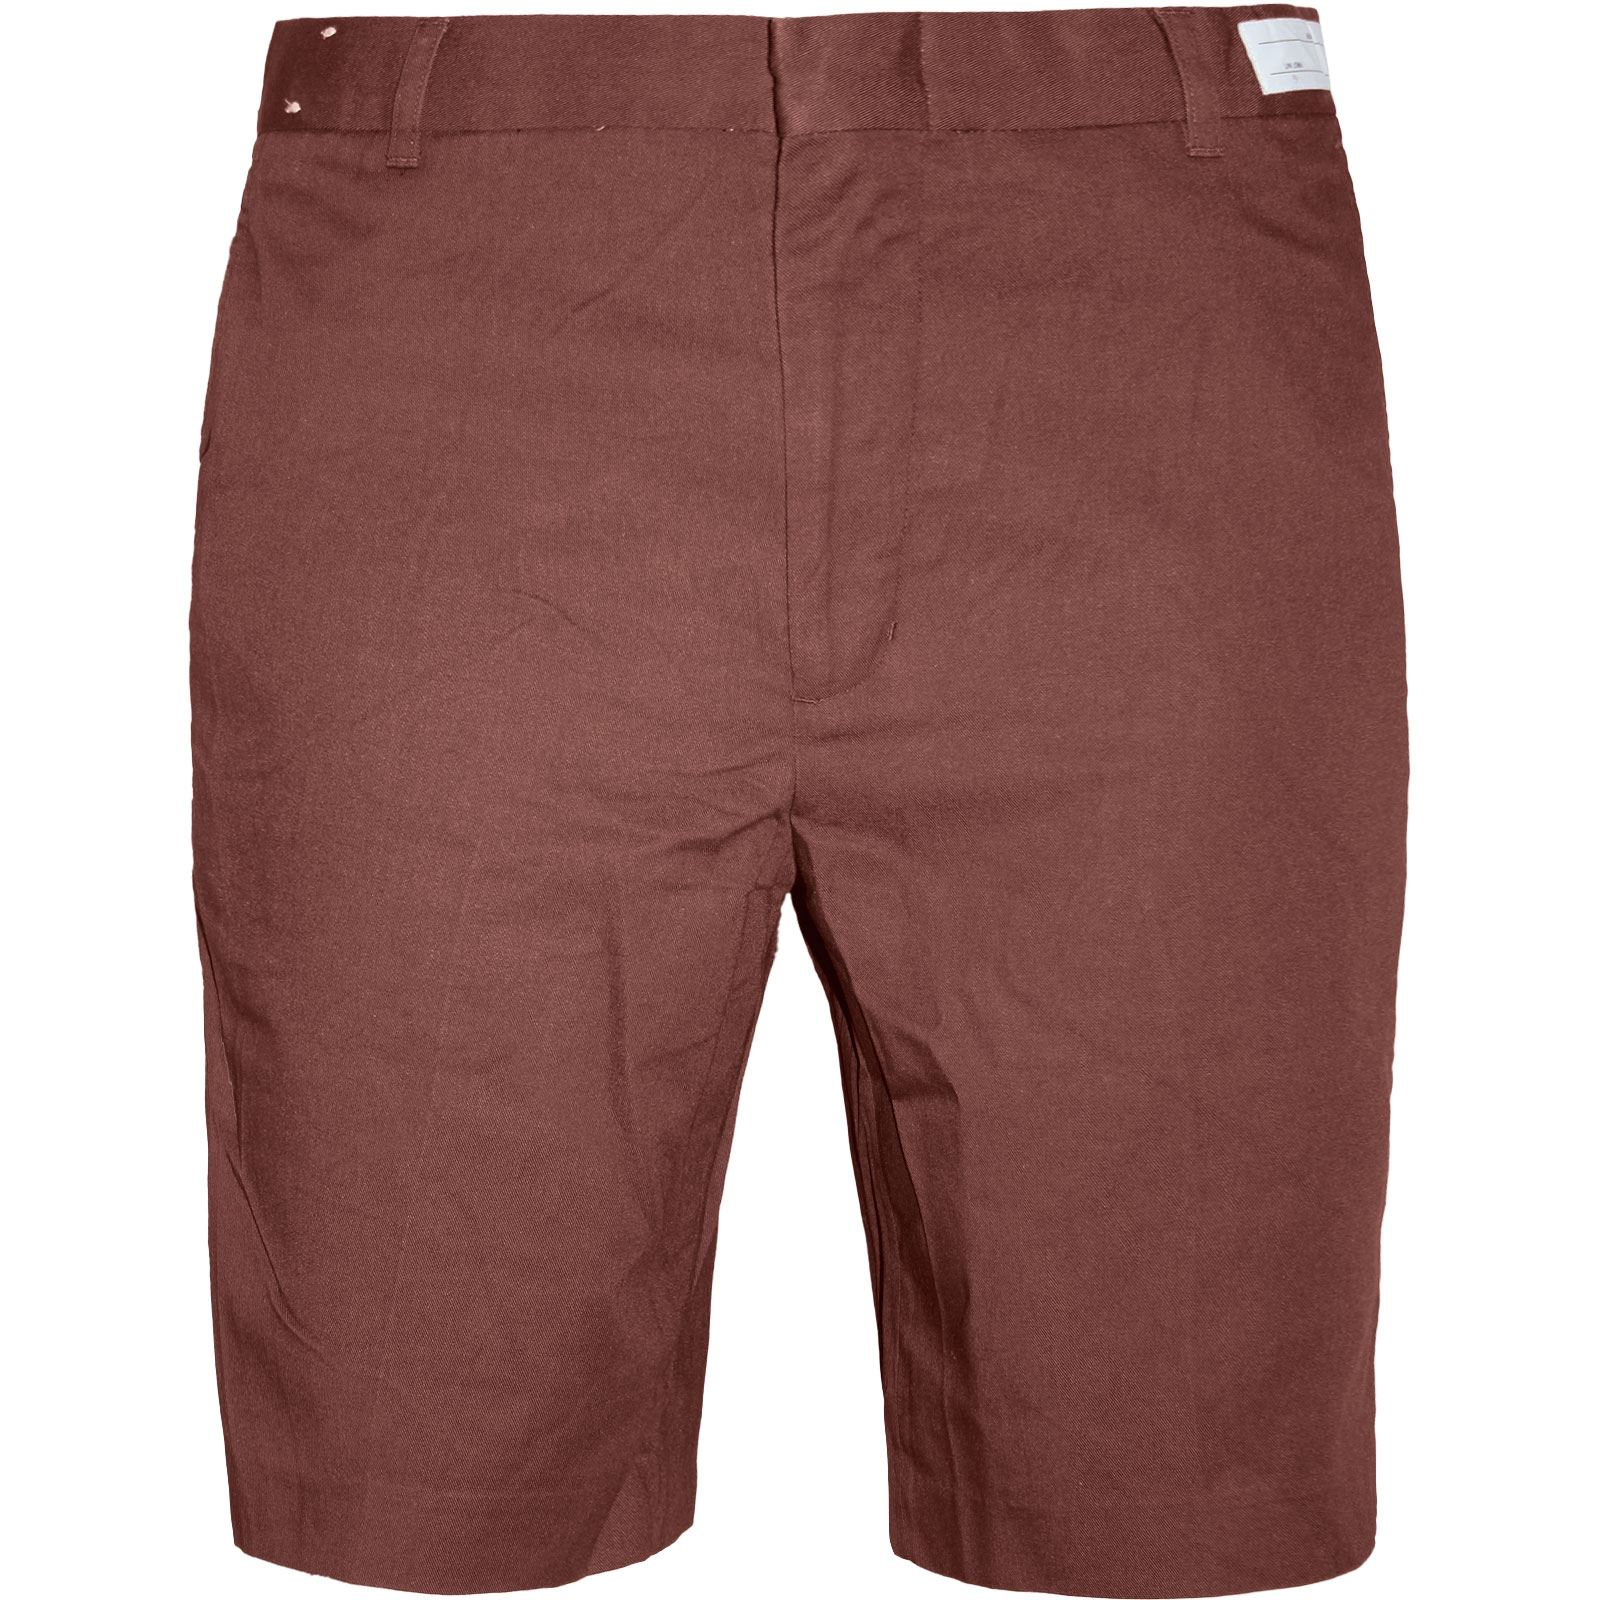 Perfect  Shorts And One Shorts And Watermelon Shorts There Are 12 Formal Shorts